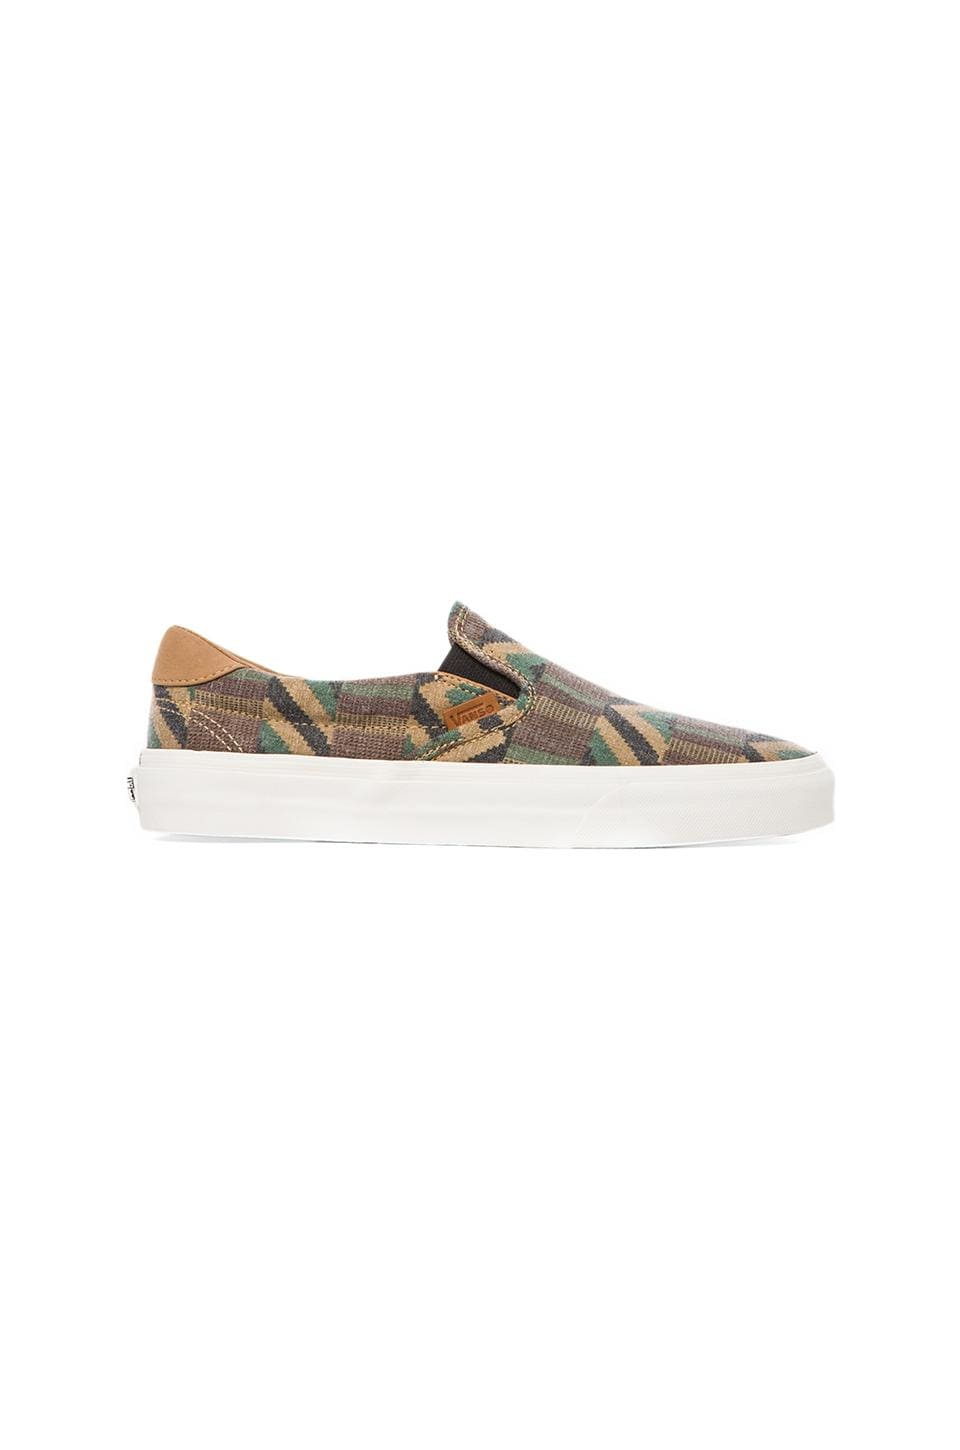 Vans California Slip-On 59 Cali Tribe in Khaki